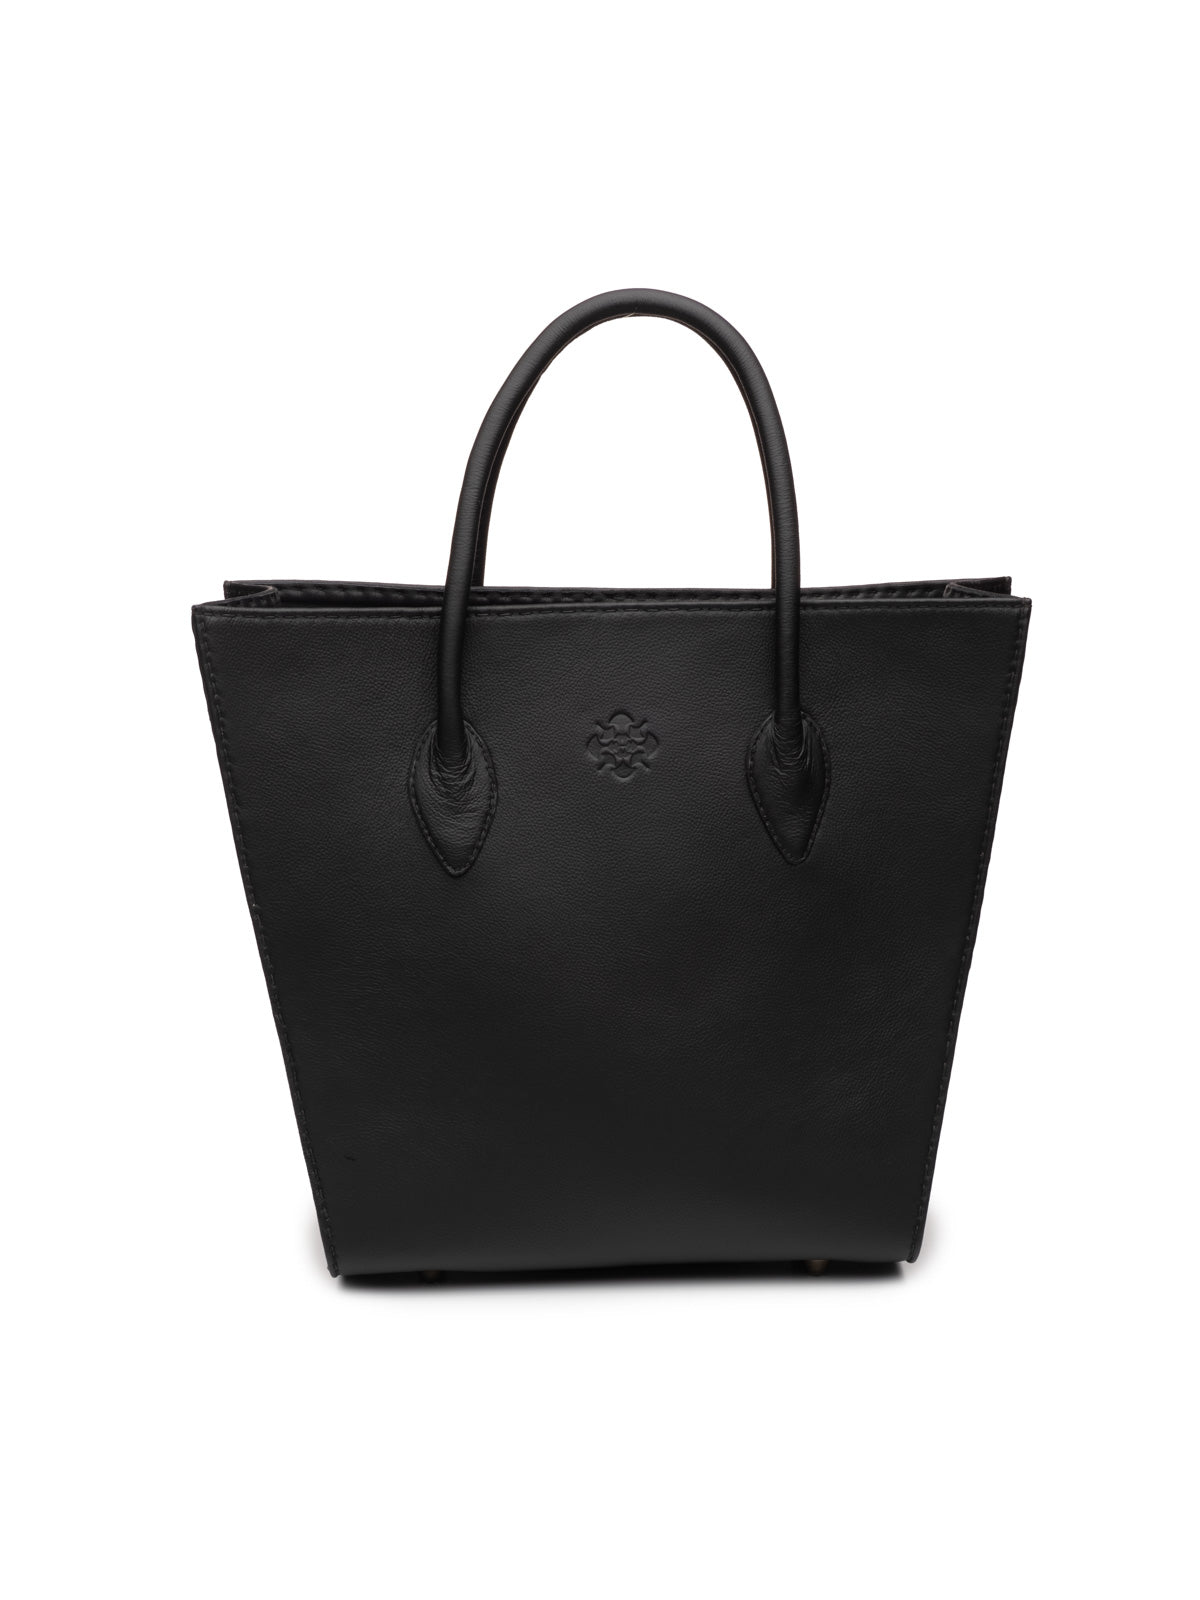 Black Petit Tote Bag